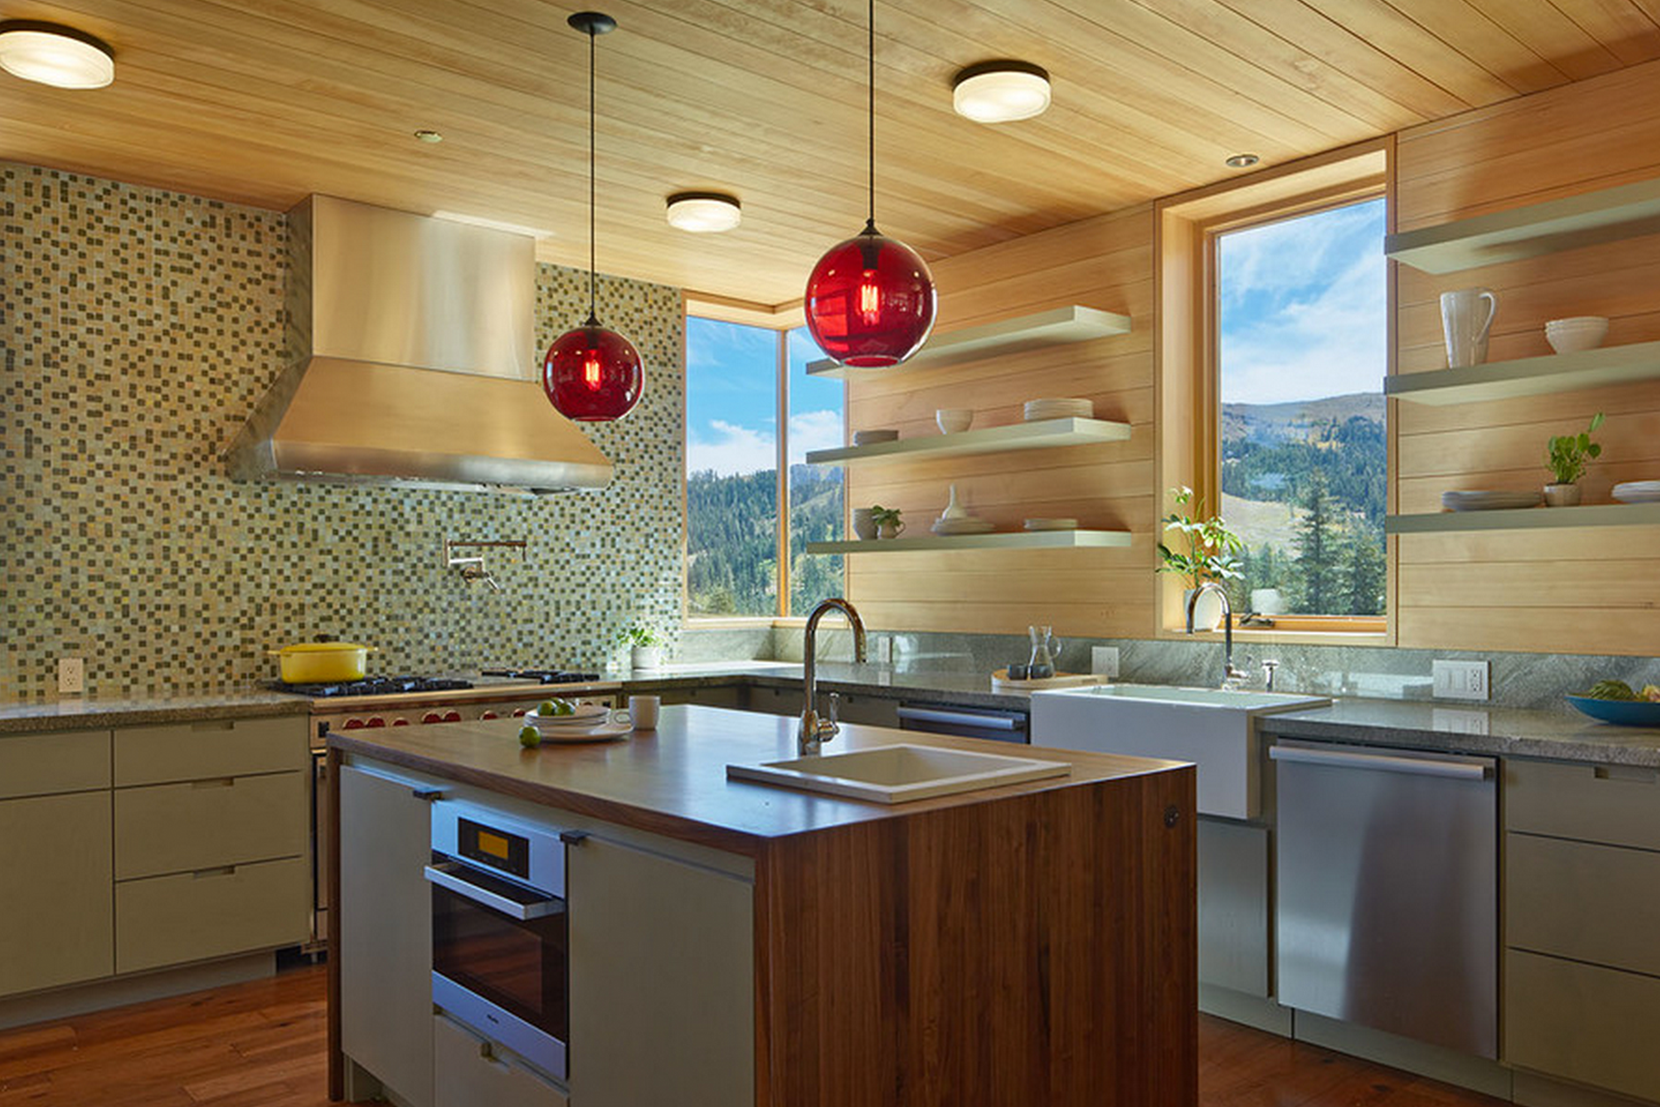 Lighting-Project-Pages_0007s_0014_Kitchen-Pendant-Modern-Lighting-Crimson.png